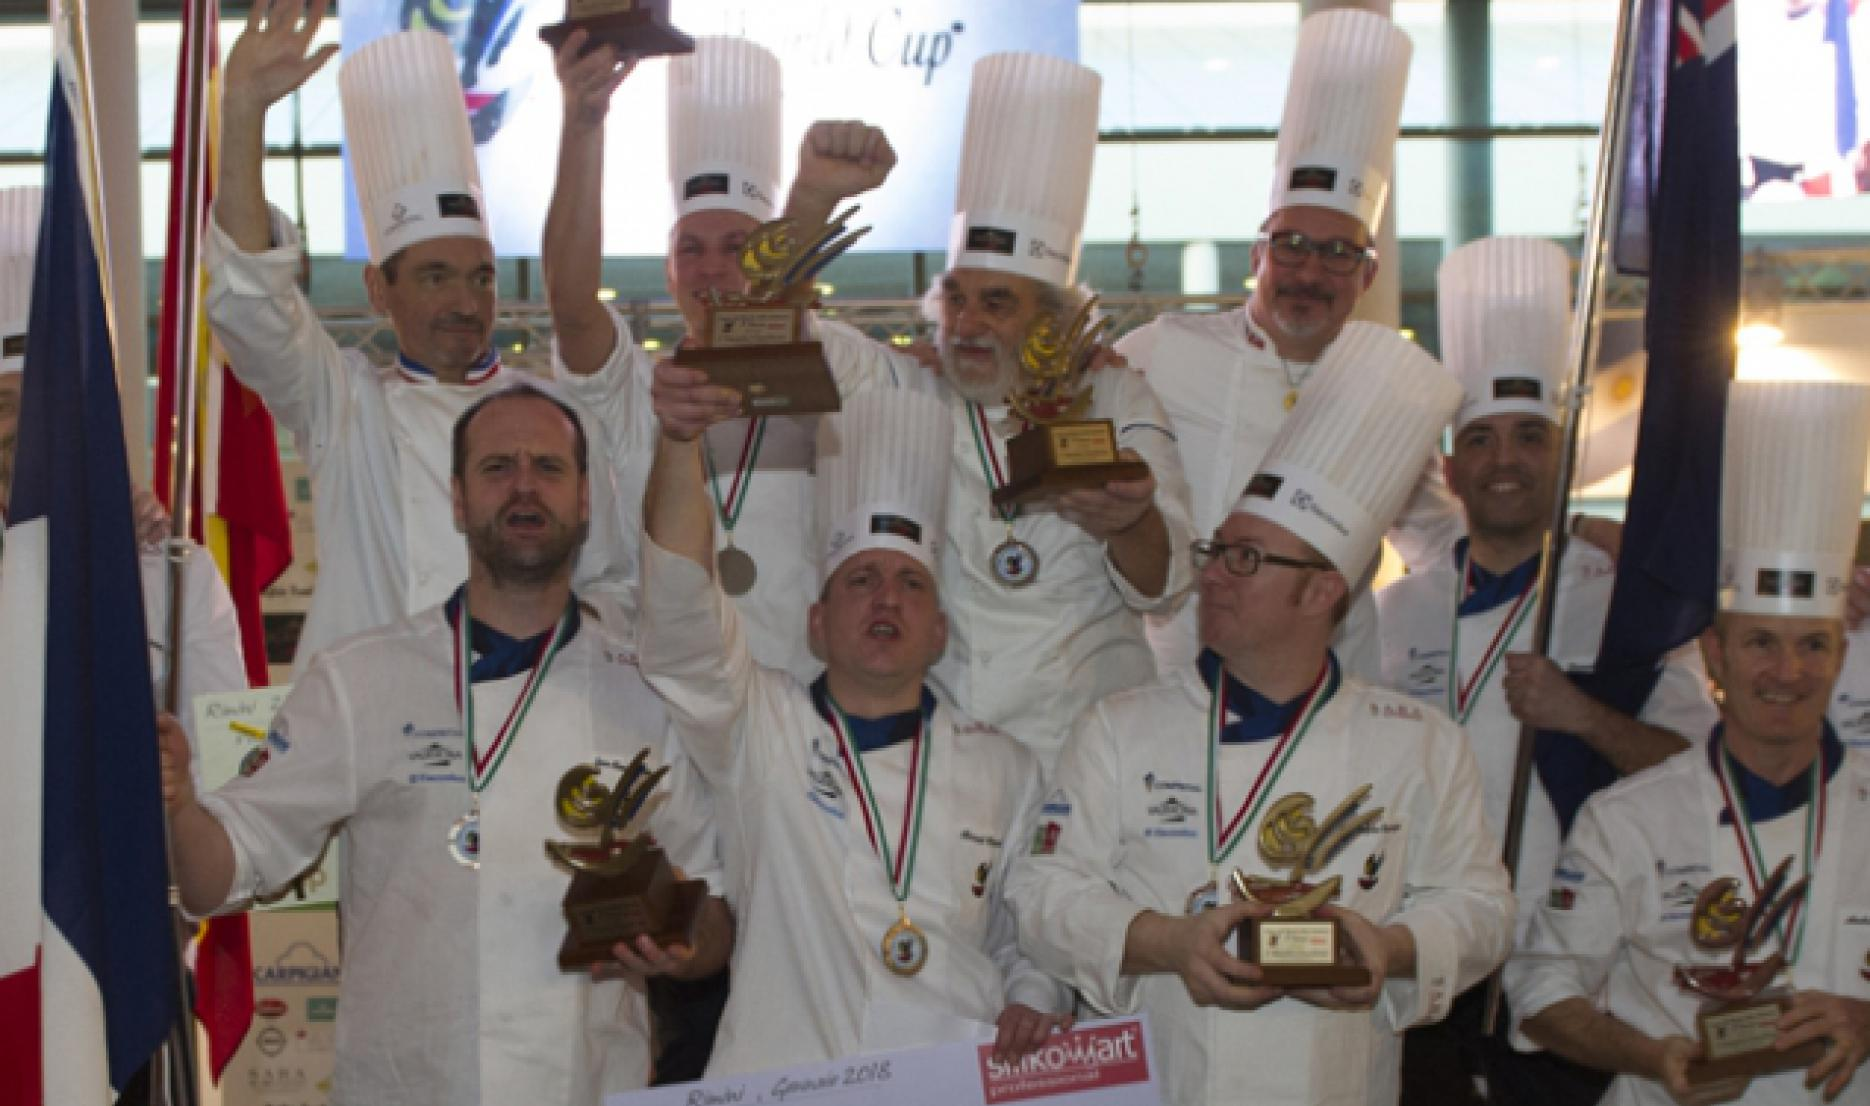 France Wins the 2018 Gelato World Cup!